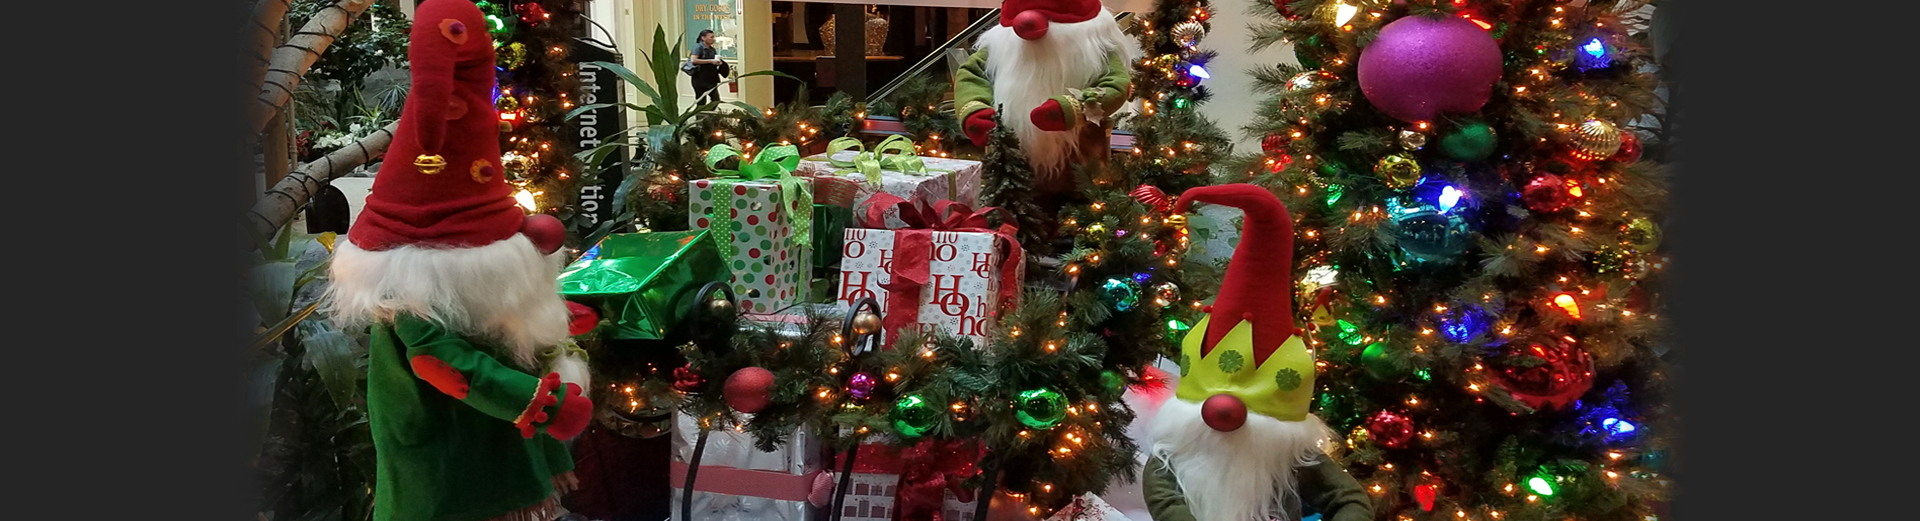 Christmas Decor with Tree, Wrapped Gifts and Bearded Elves